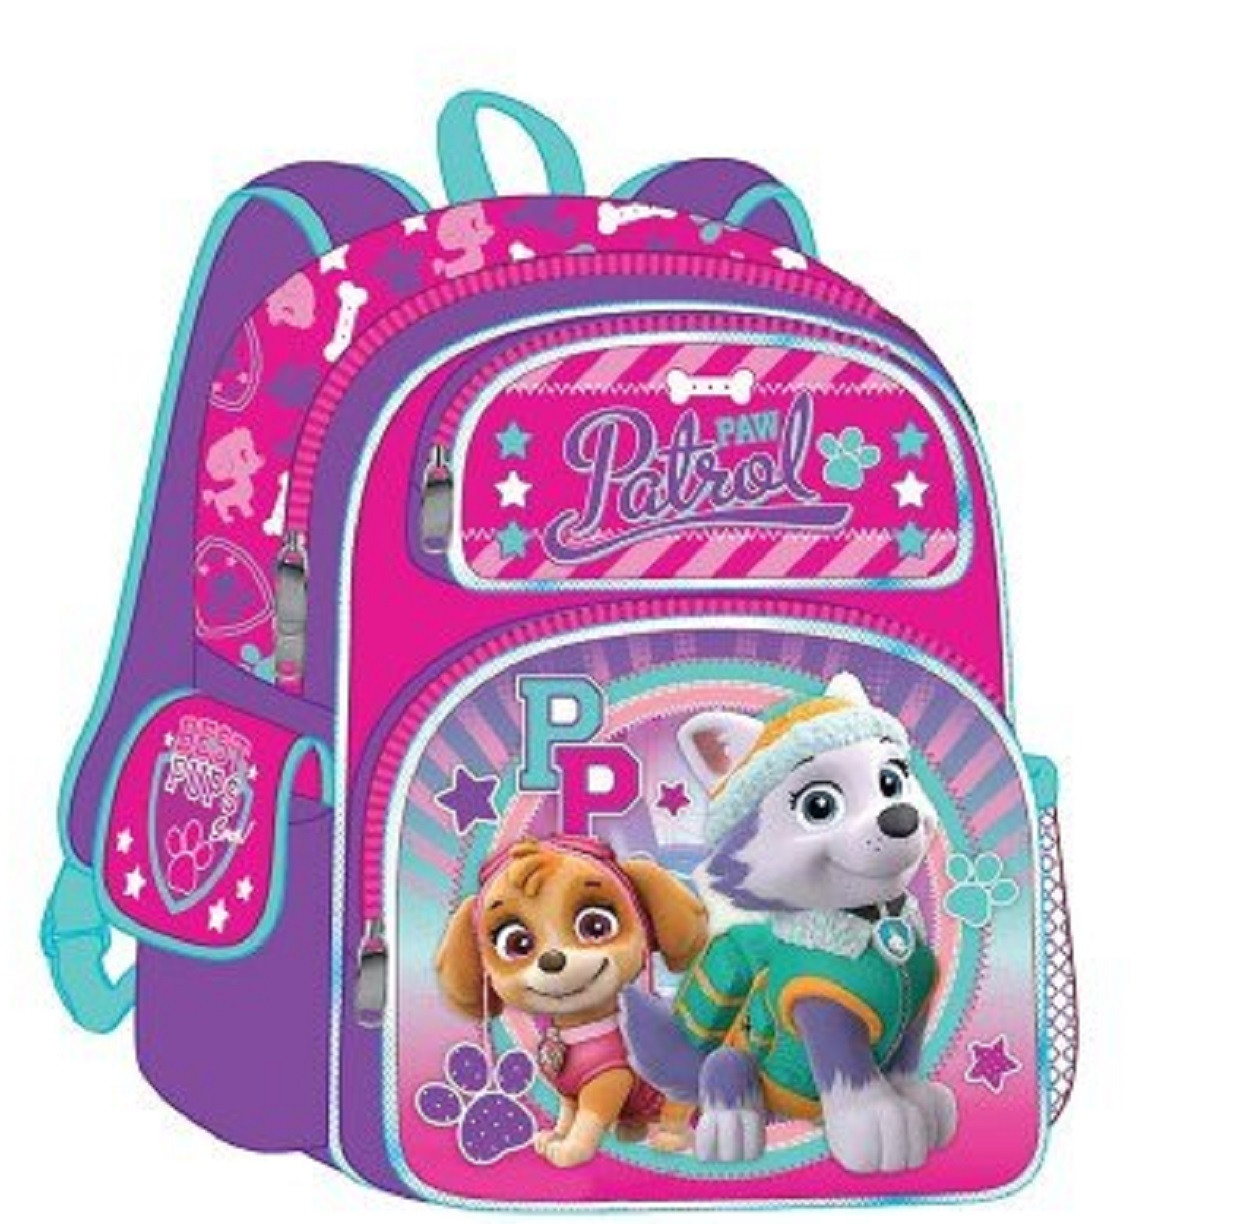 "Backpack - Paw Patrol - Small 12"" Inch - Skye and Everest"